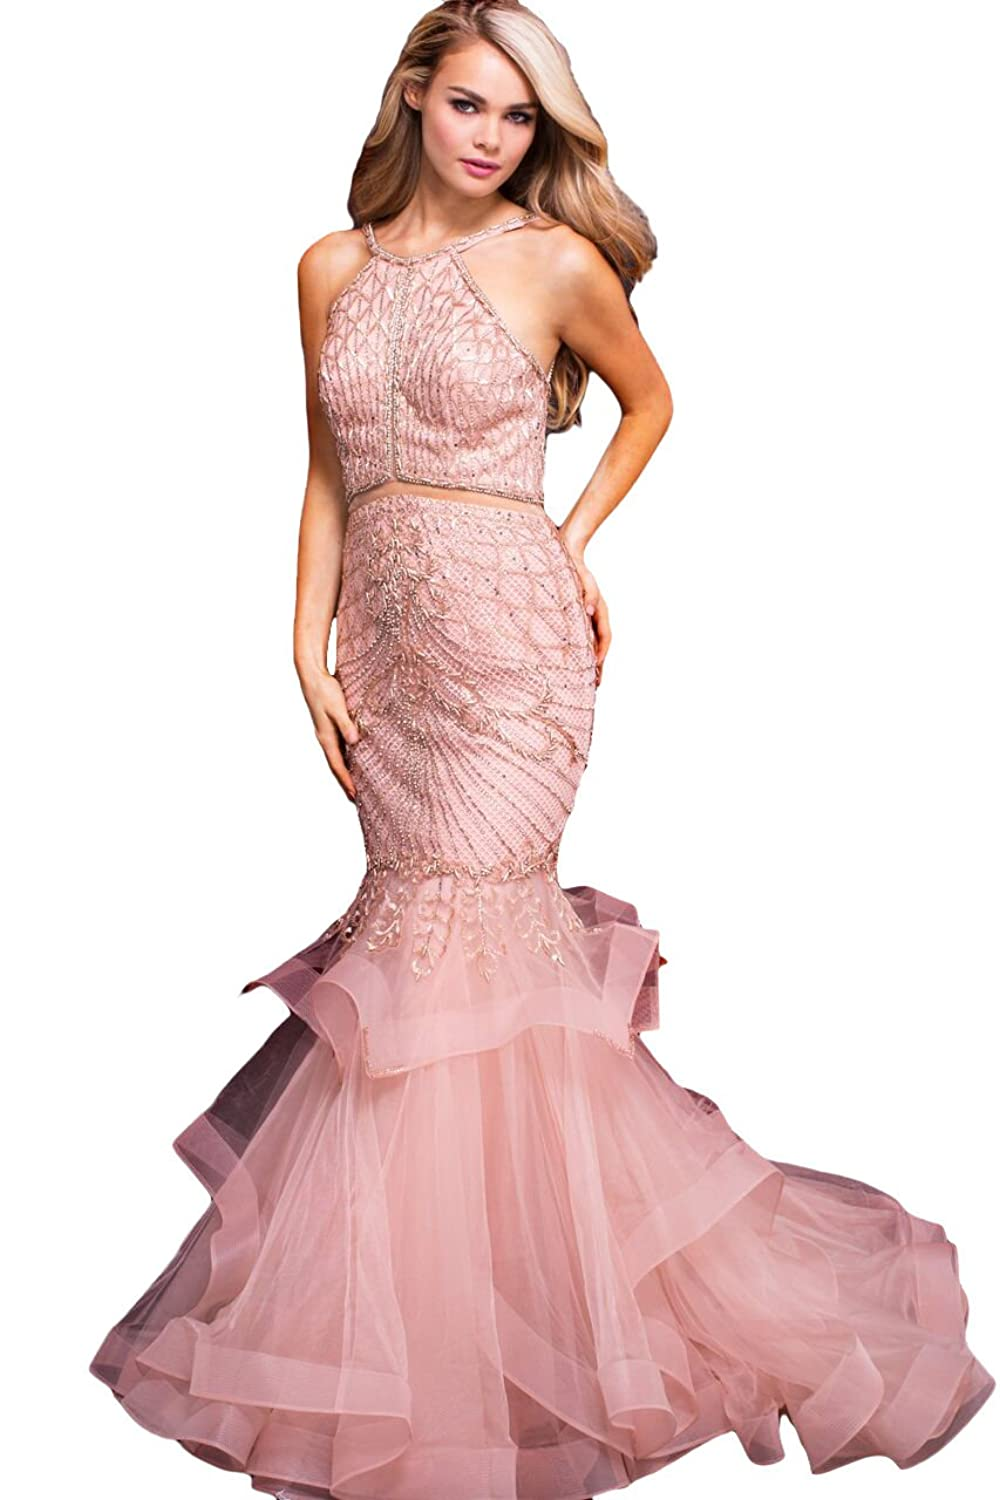 Old Fashioned Jovani Blush Prom Dress Component - Colorful Wedding ...